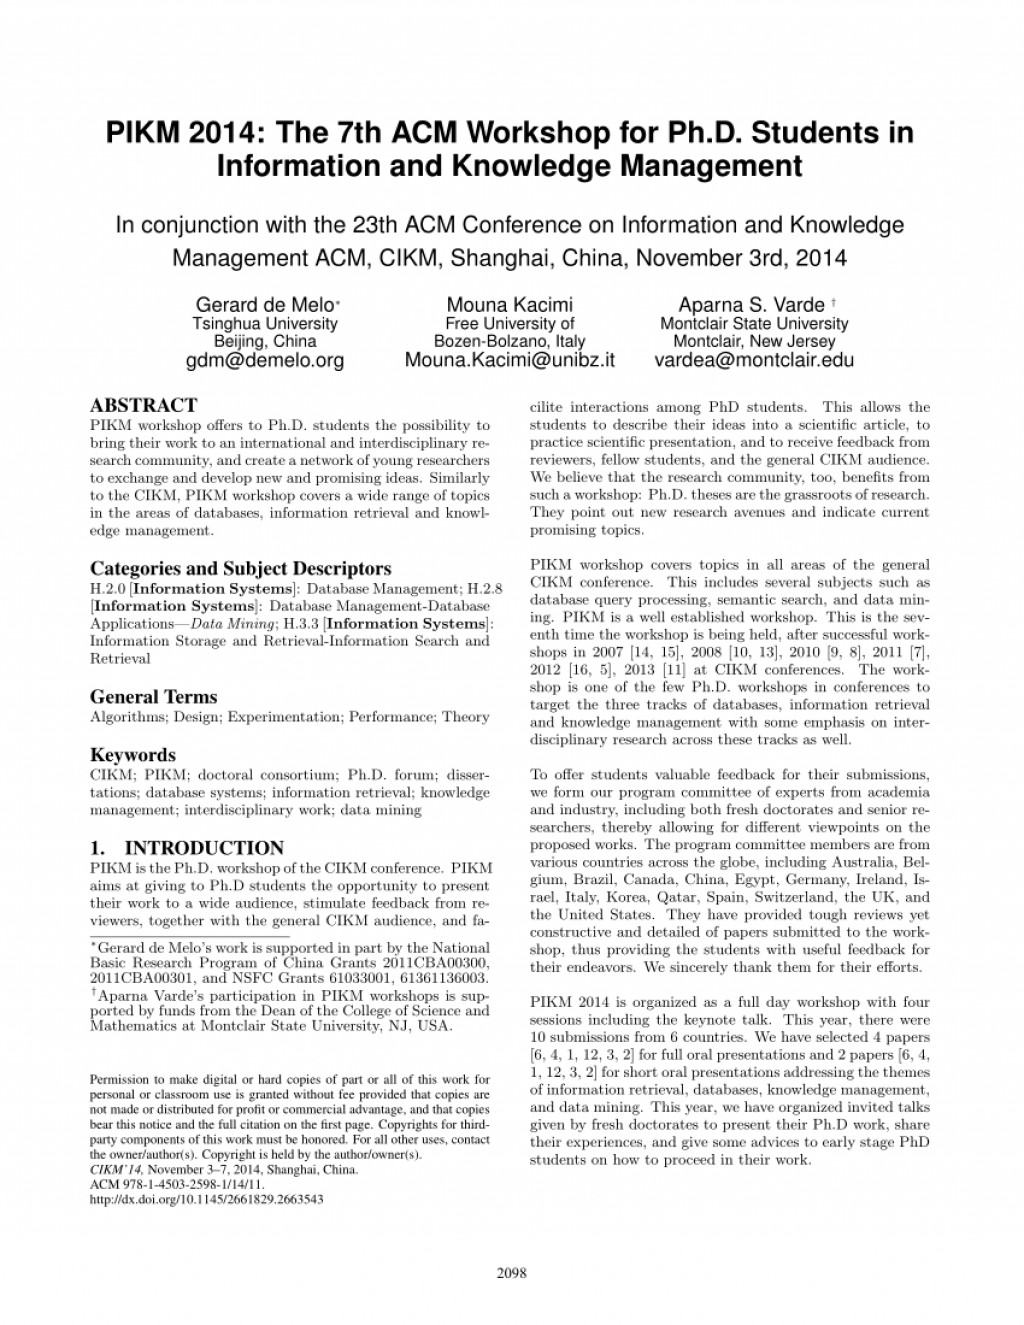 003 Database Management Research Paper Topics Amazing On System Large